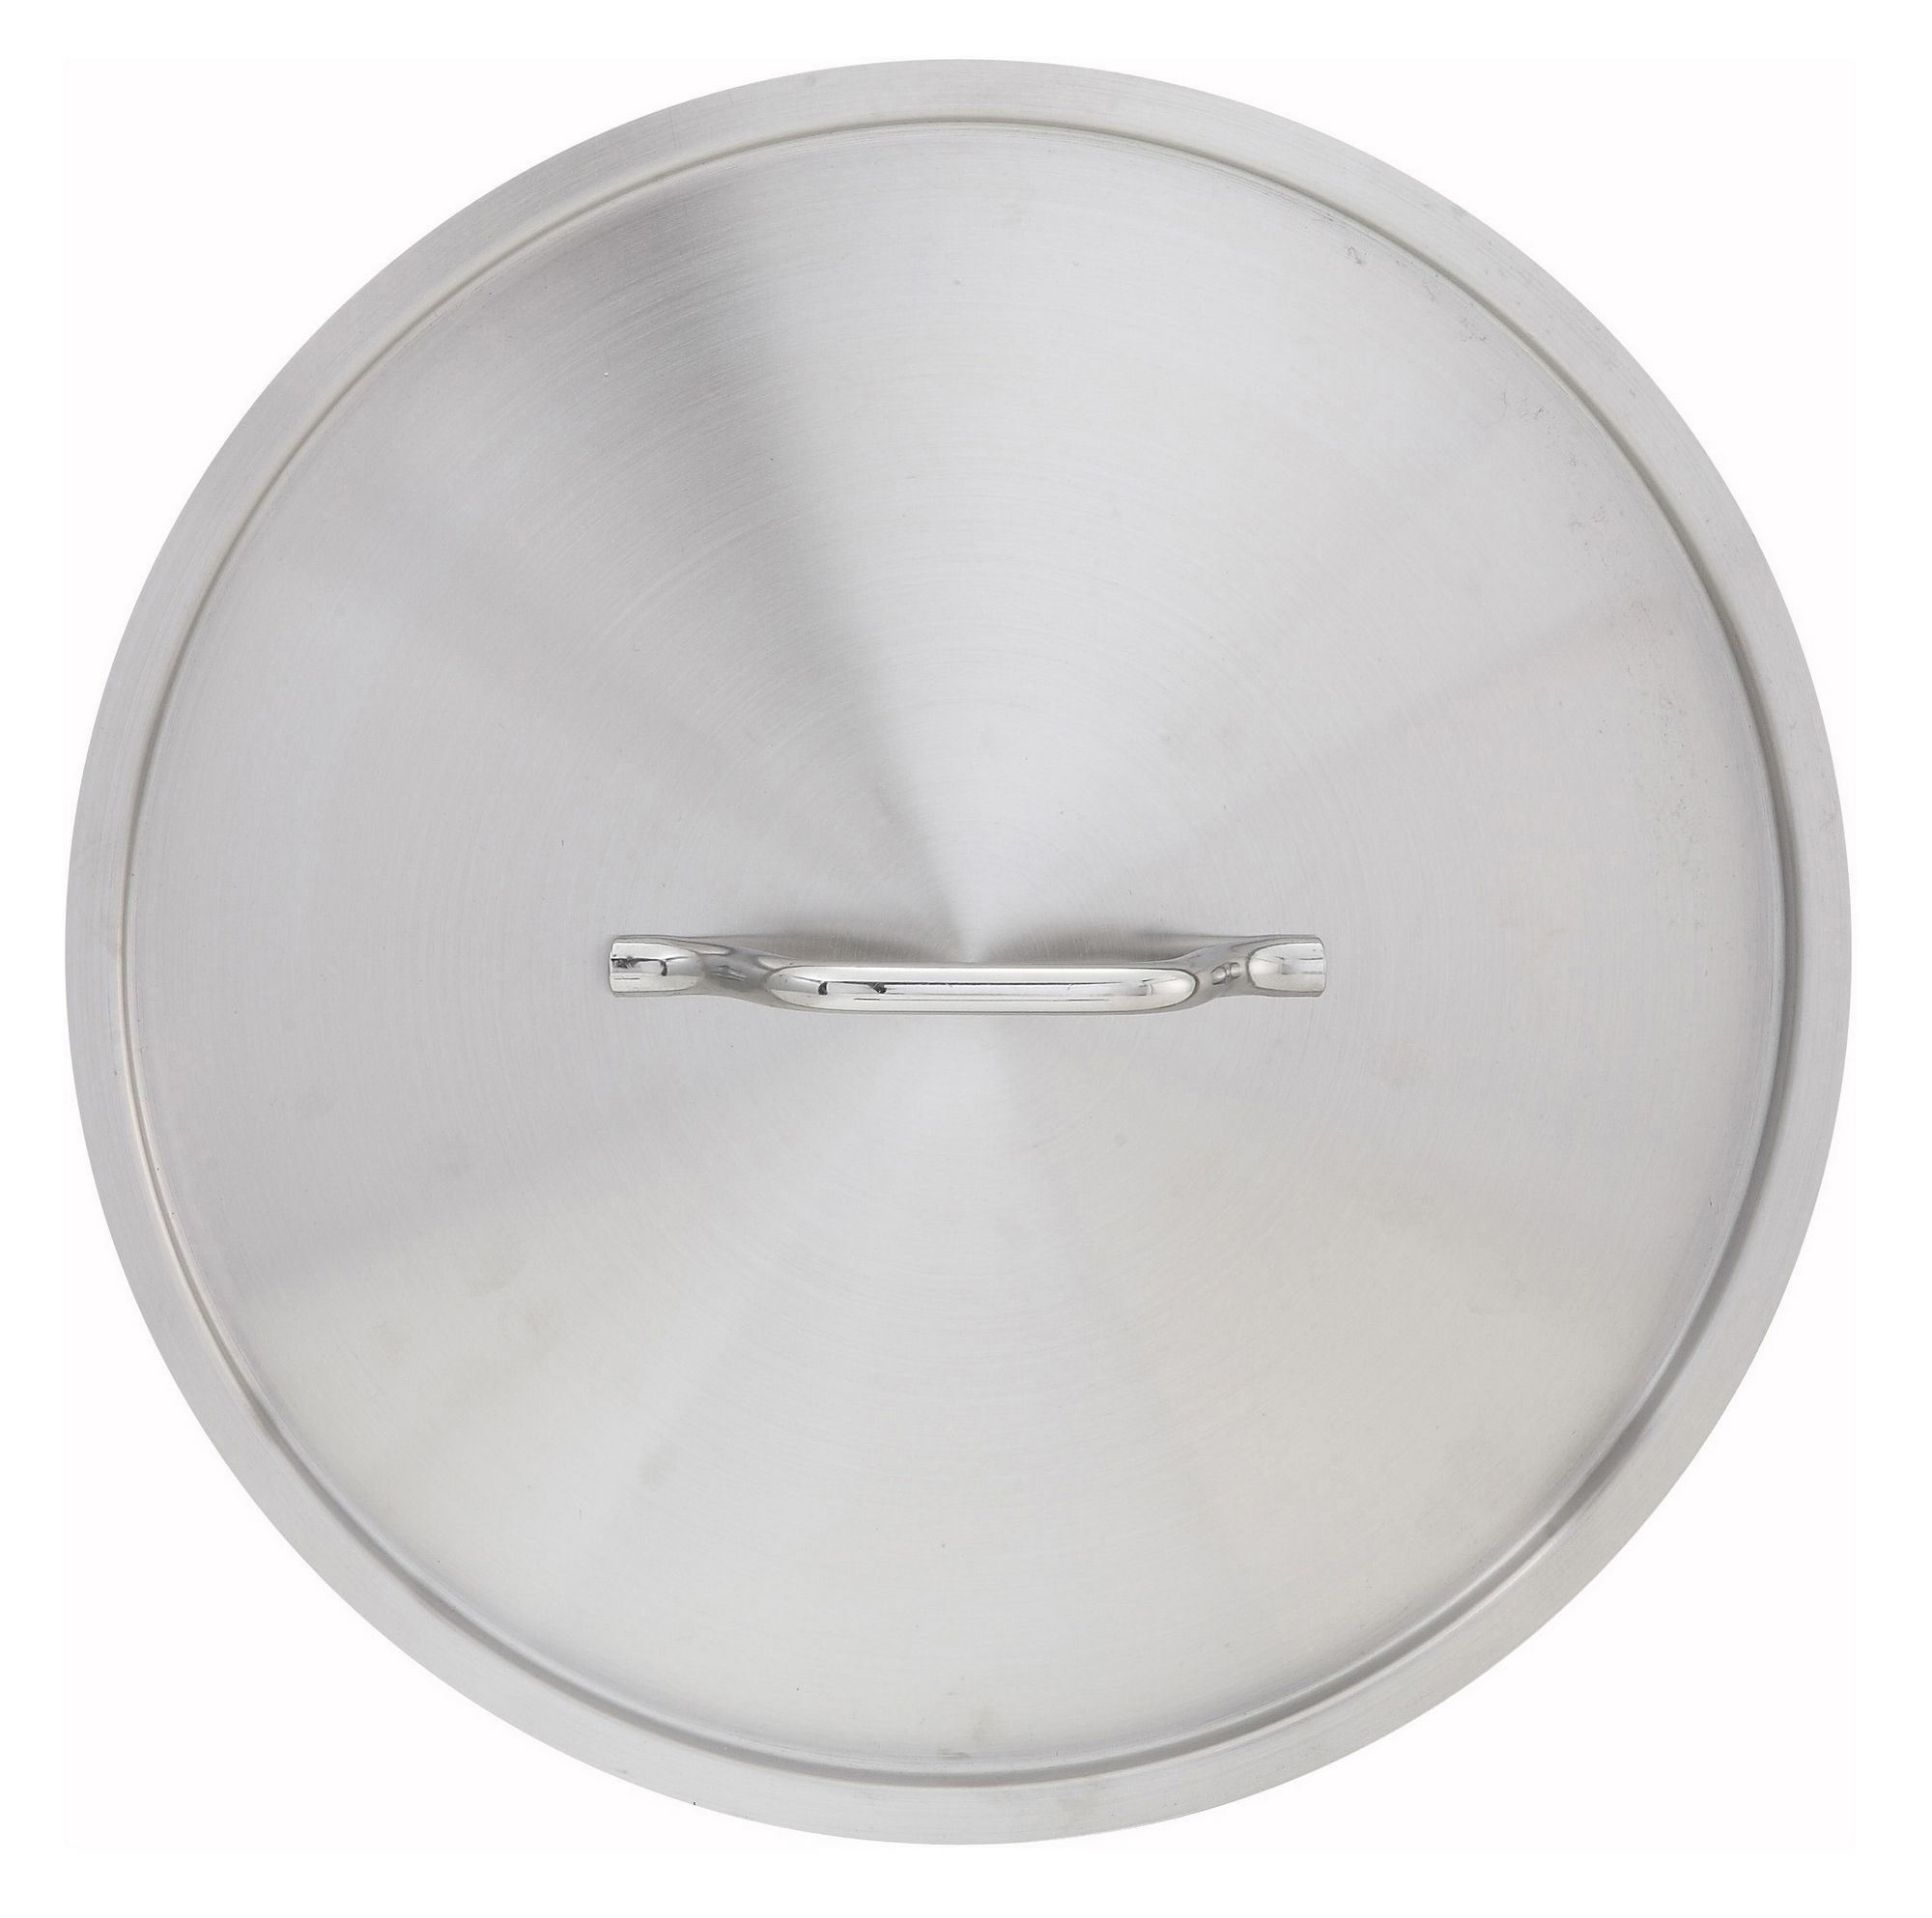 Stainless Steel Cover For 40-Qt Stock Pot (SST-40)